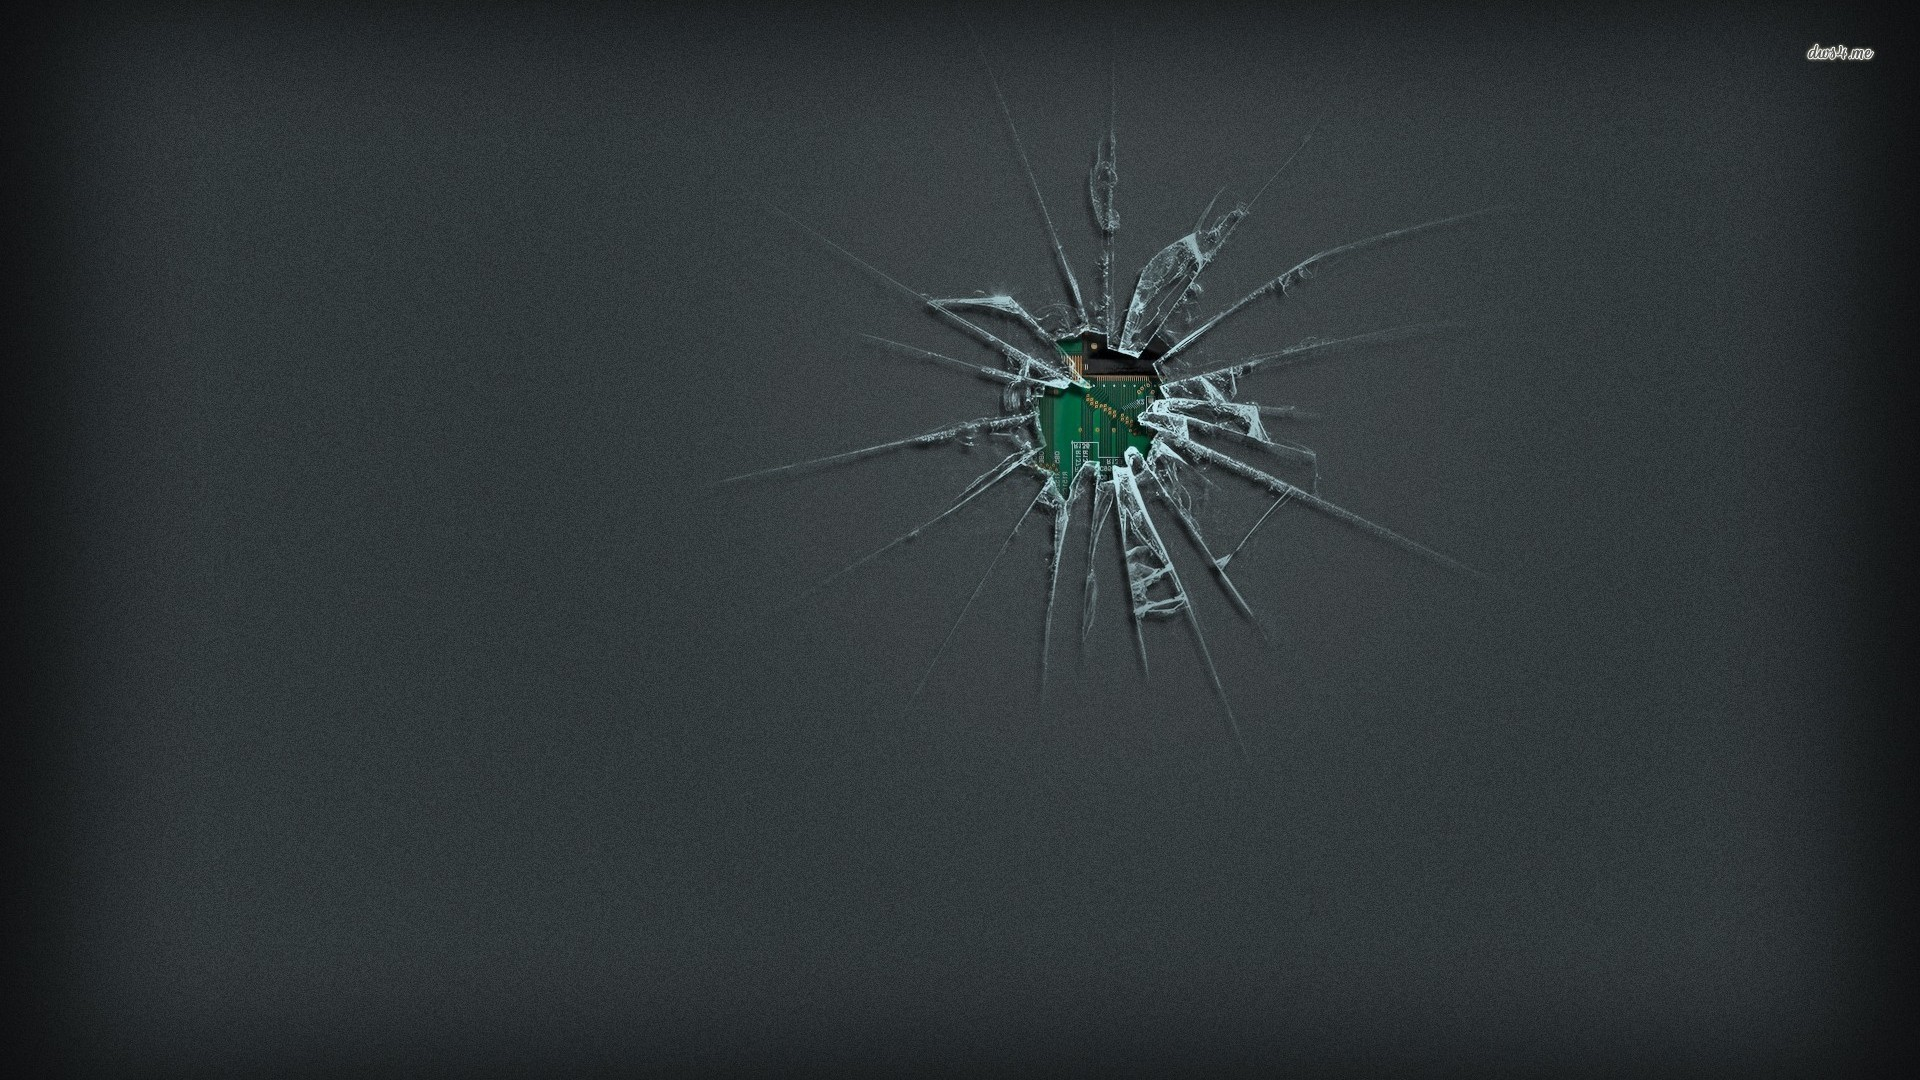 cracked screen image hd